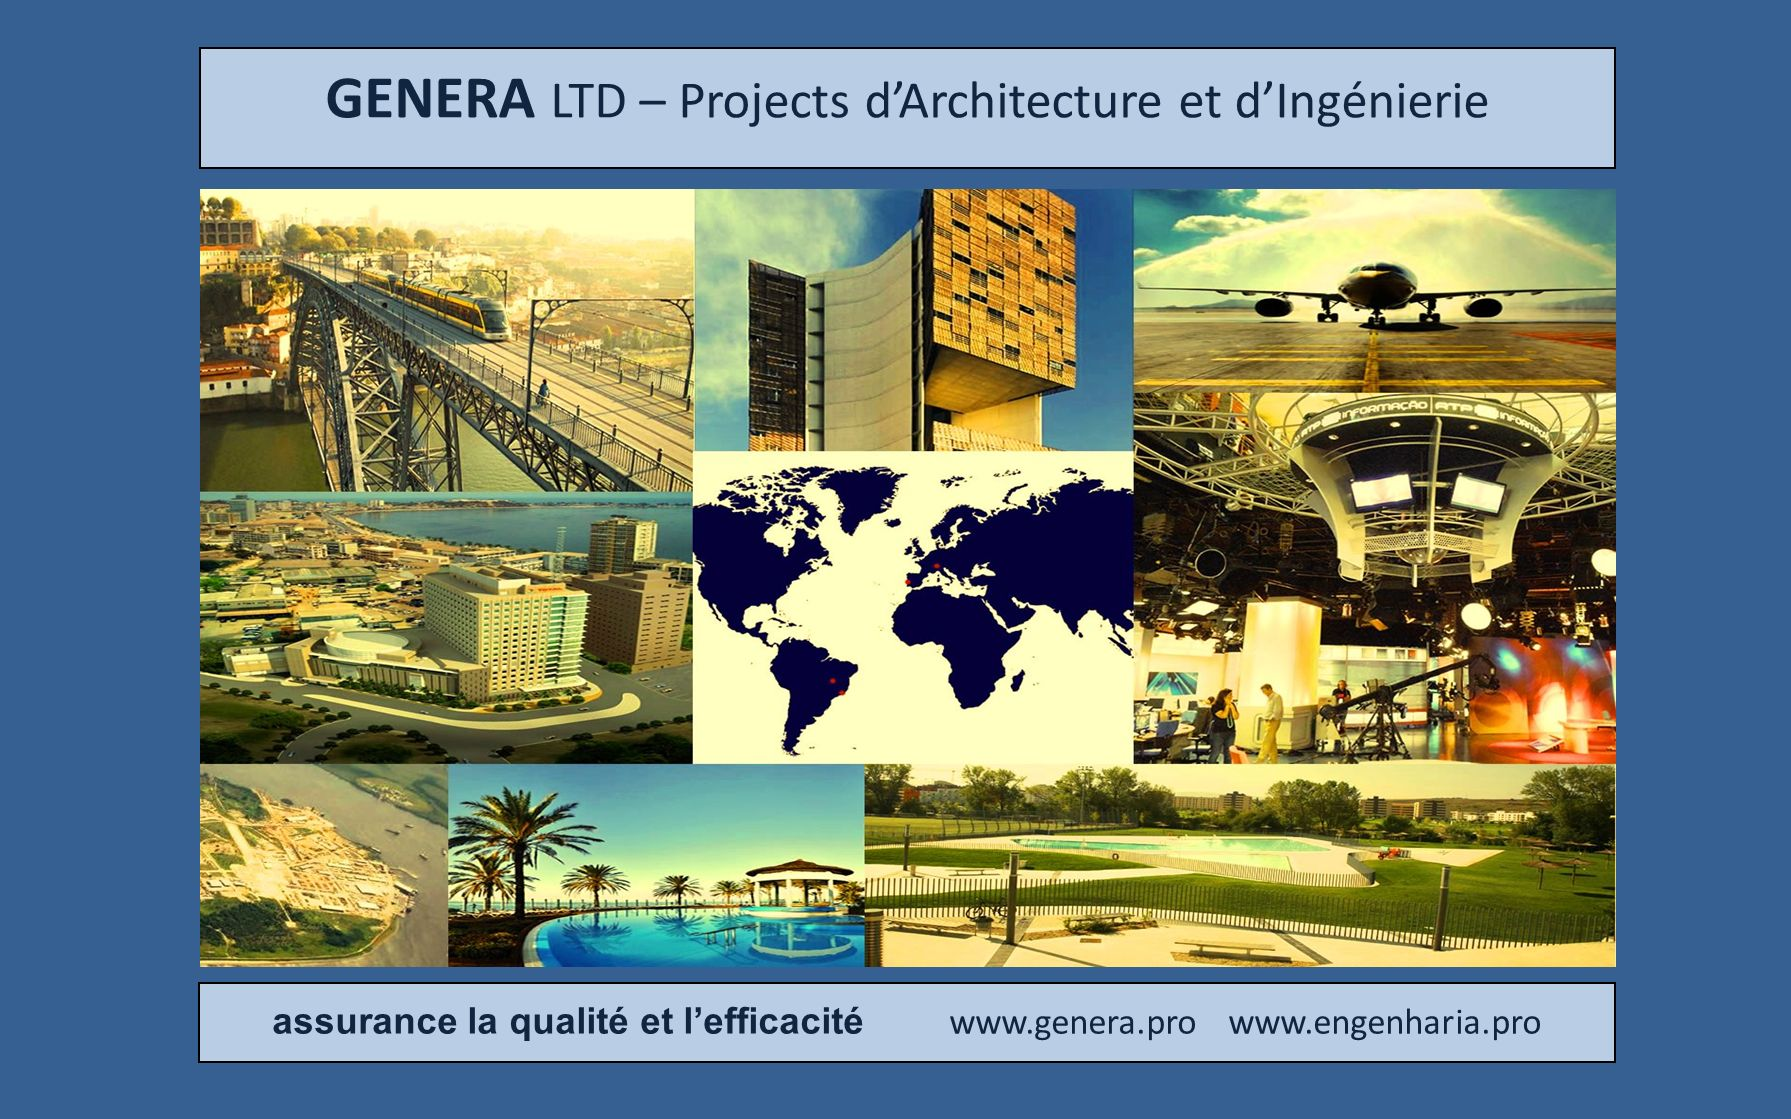 GENERA LTD – Projects d'Architecture et d'Ingénierie